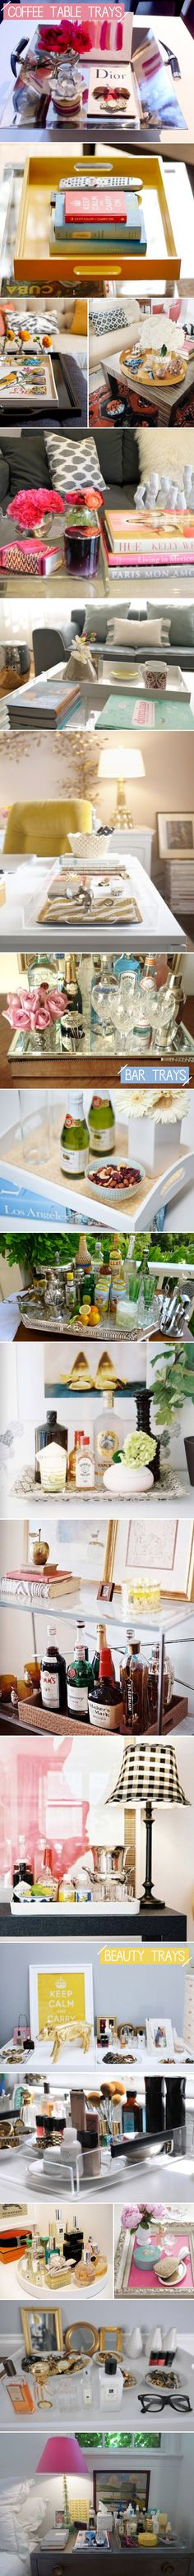 trays Love this idea! Interior Design with Paisley Pattern! Home Design Ideas, Pictures, Remodel and Decor on imgfave Interior Design with P. Coffee Table Design, Coffee Table Styling, Coffee Table Tray, Bar Tray, Do It Yourself Furniture, Do It Yourself Home, Tray Styling, Home Design, Interior Design